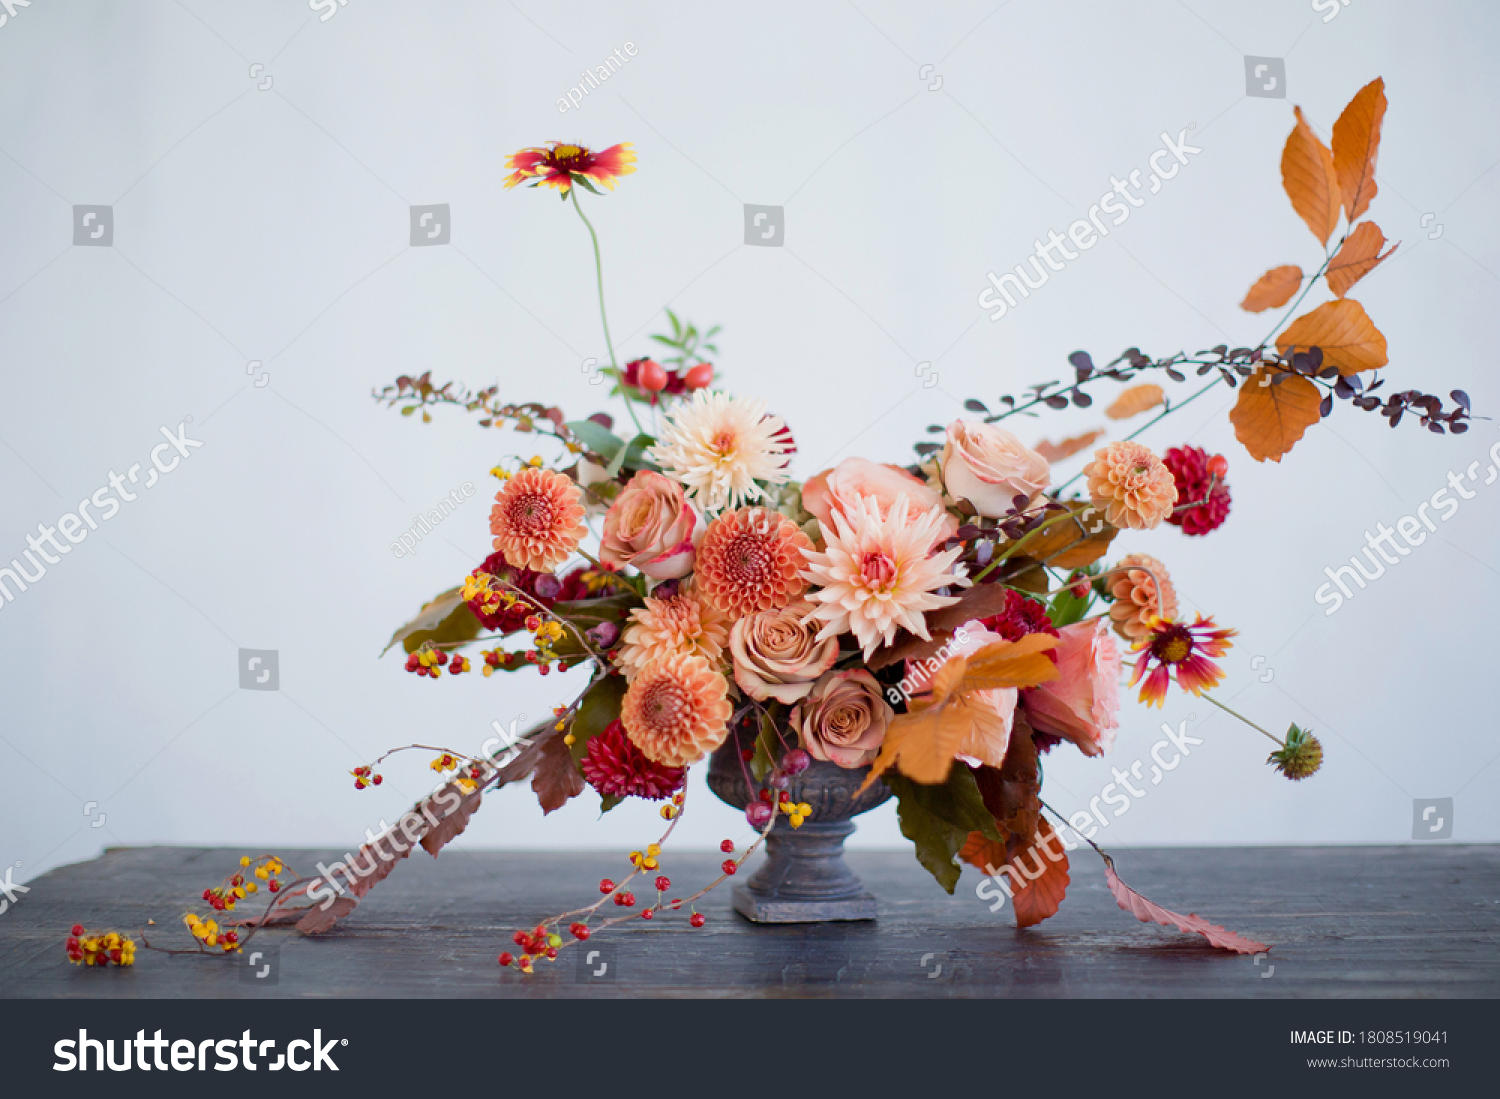 Beautiful flower composition with autumn orange and red flowers and berries. Autumn bouquet in vintage vase on a white wall background #1808519041